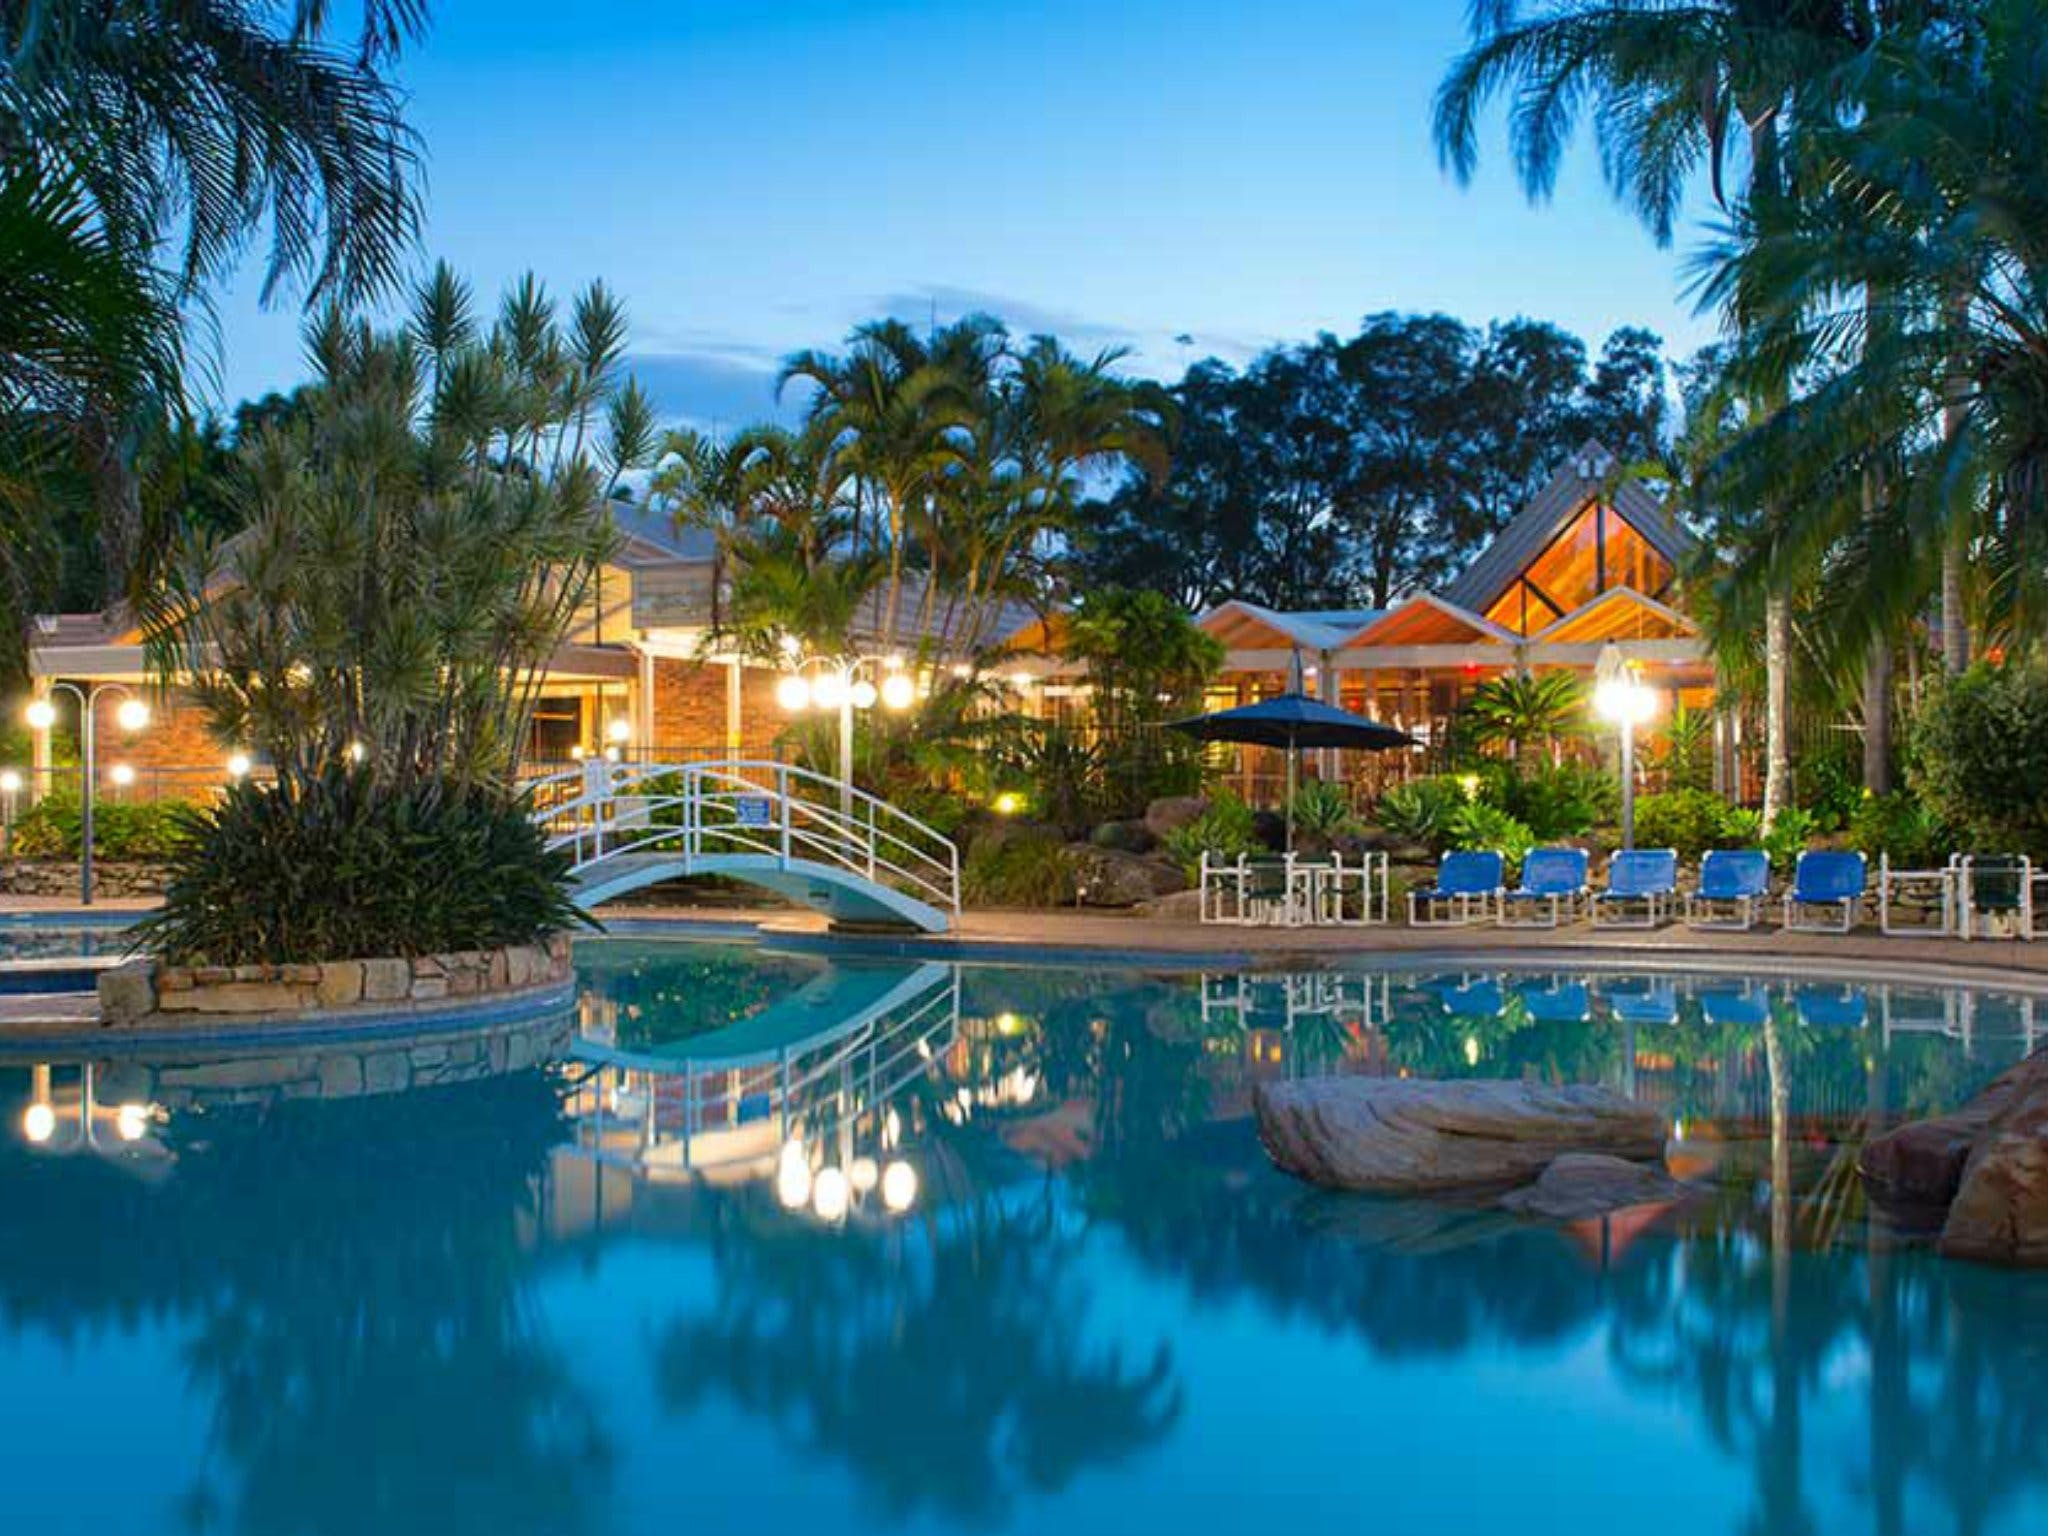 Boambee Bay Resort - Accommodation Australia